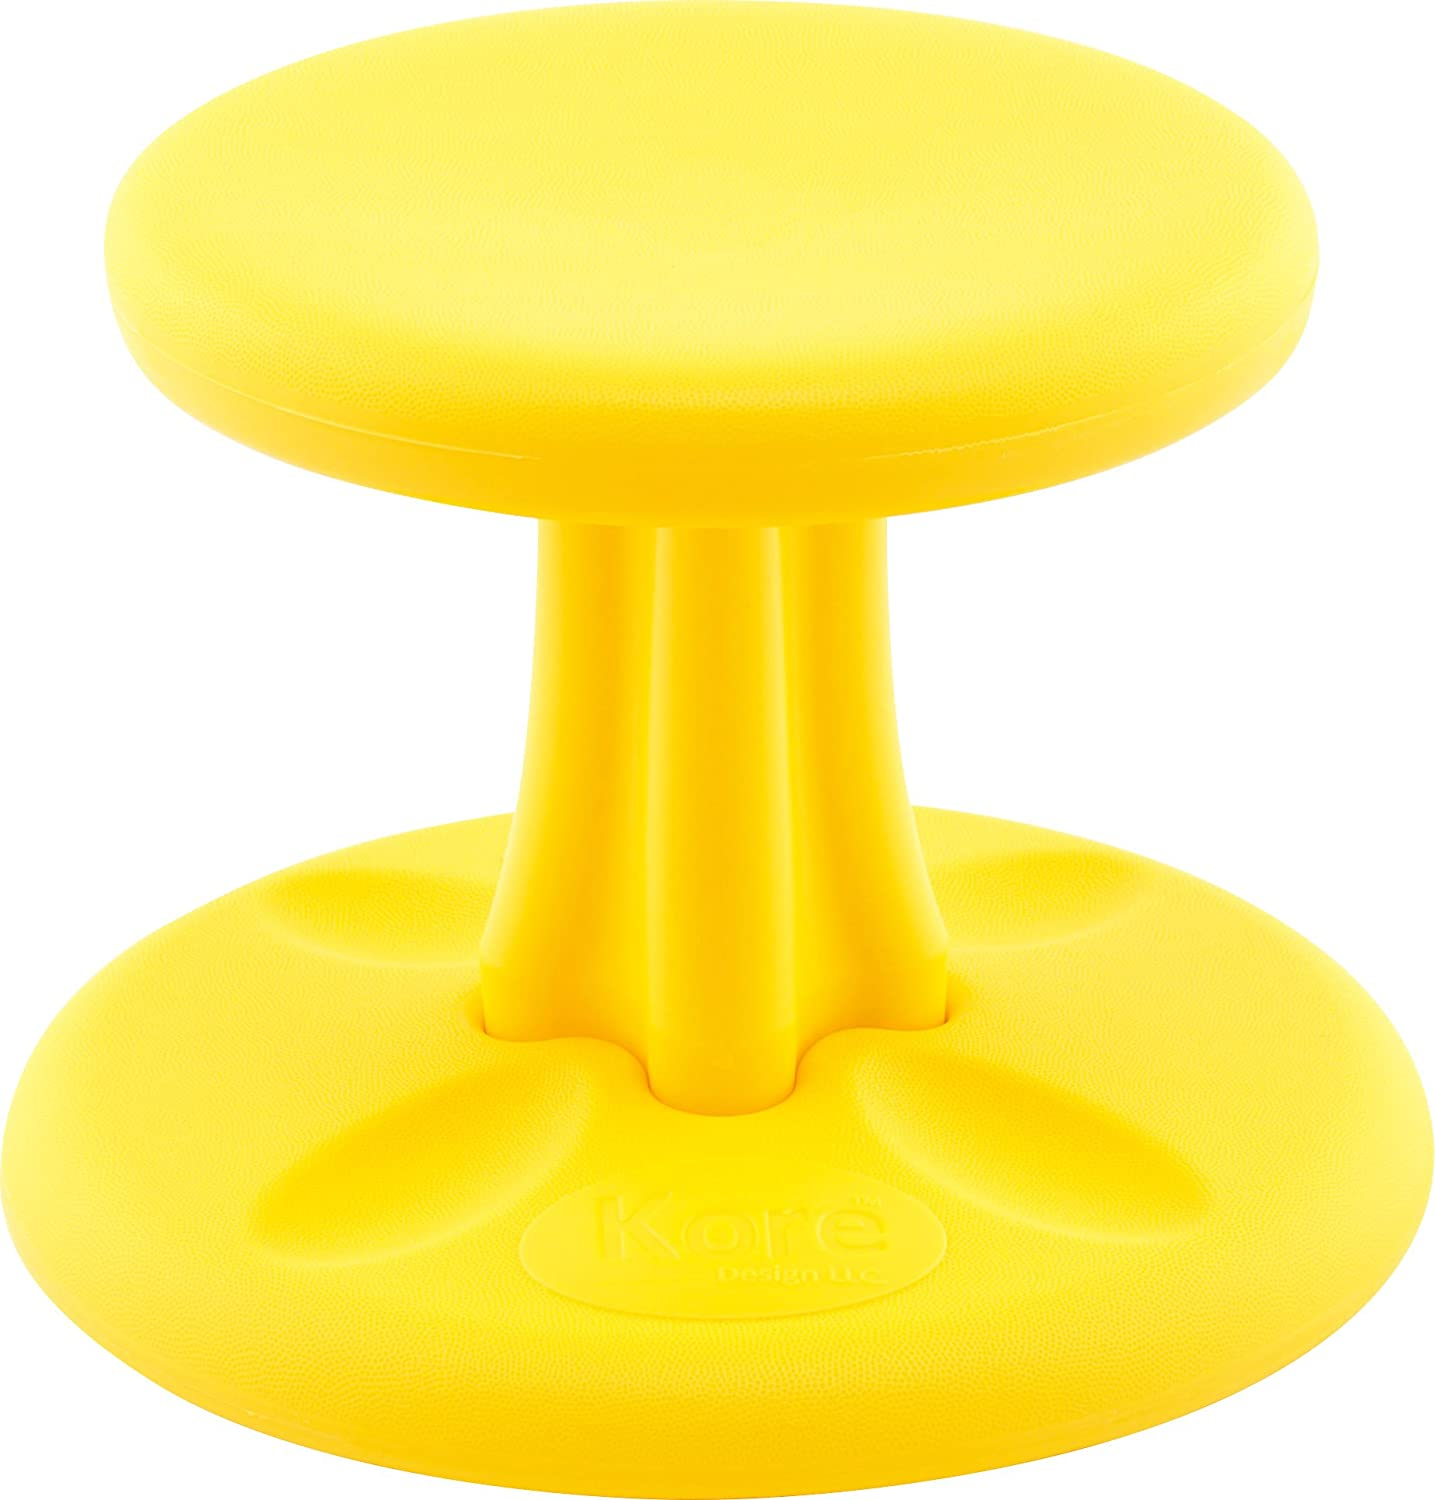 Kore patented wobble chair now with antimicrobial protection stem flexible seating made in the usa active sitting for kids toddler yellow 10in